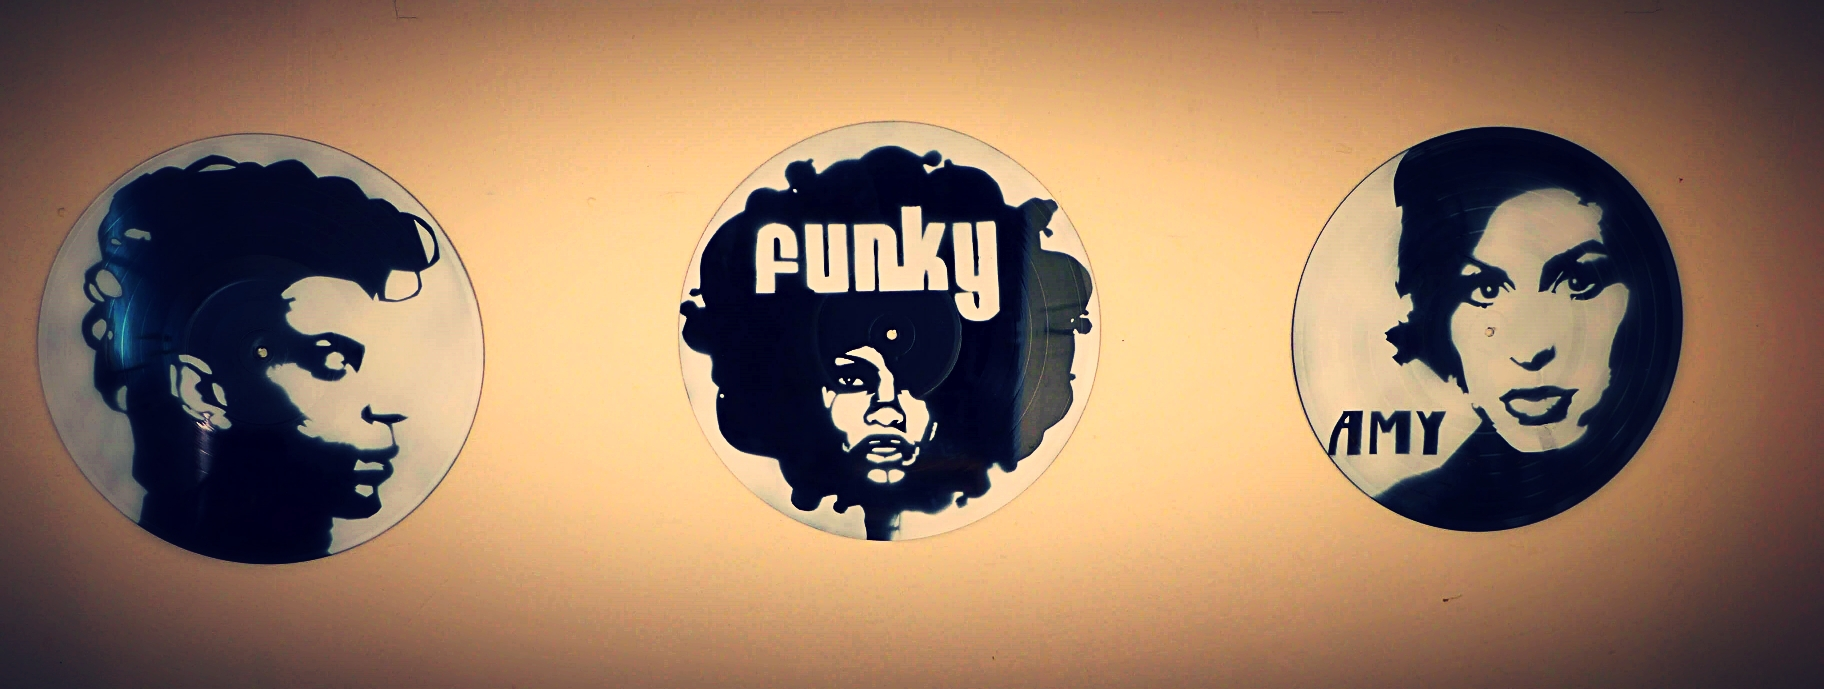 disque-vinyle-decoratif-prince-amy-funk